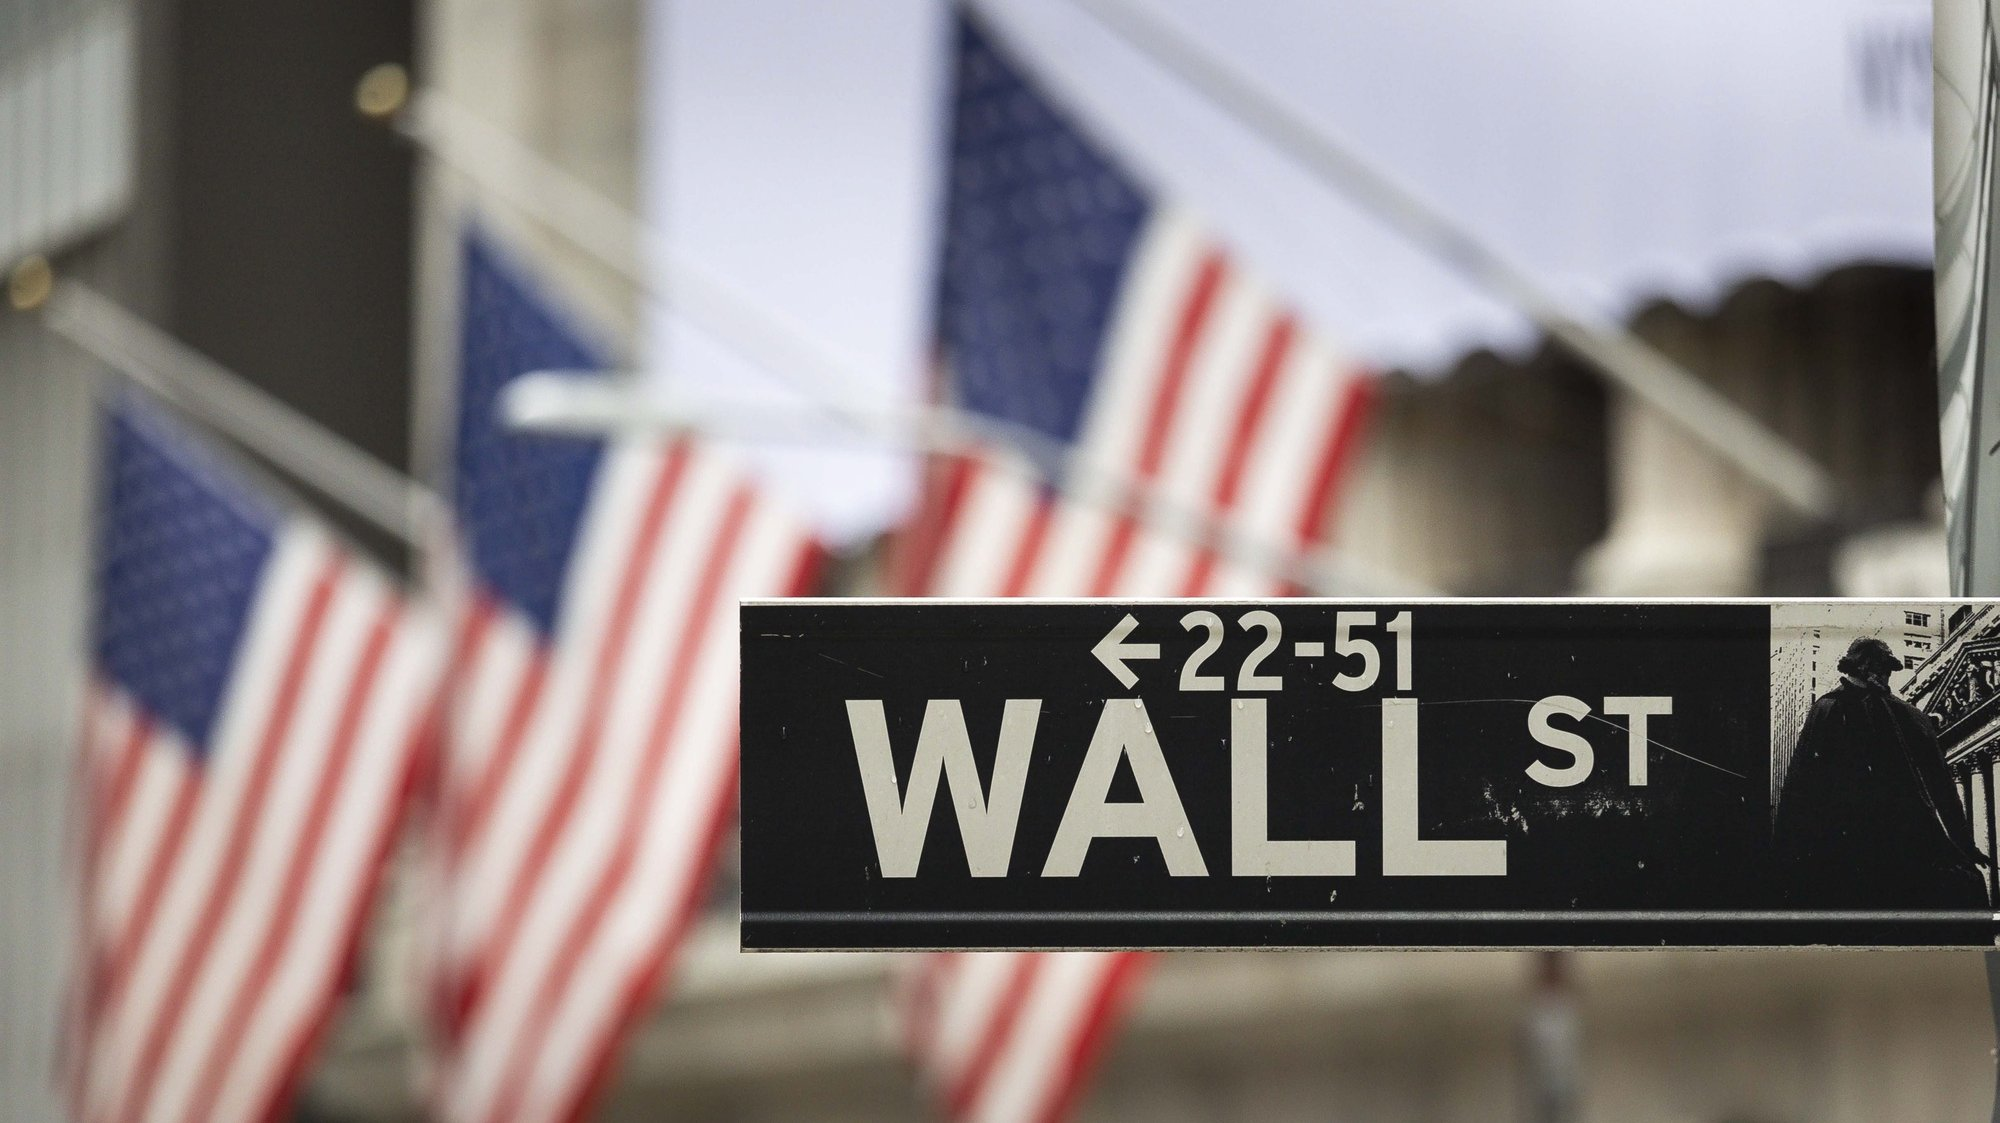 epa08839491 (FILE) - A sign for Wall Street outside of the New York Stock Exchange in New York, New York, USA, 28 October 2020 (reissued 24 November 2020). For the first time in its history, the US stock market index Dow Jones has risen above 30,000 points.  EPA/JUSTIN LANE